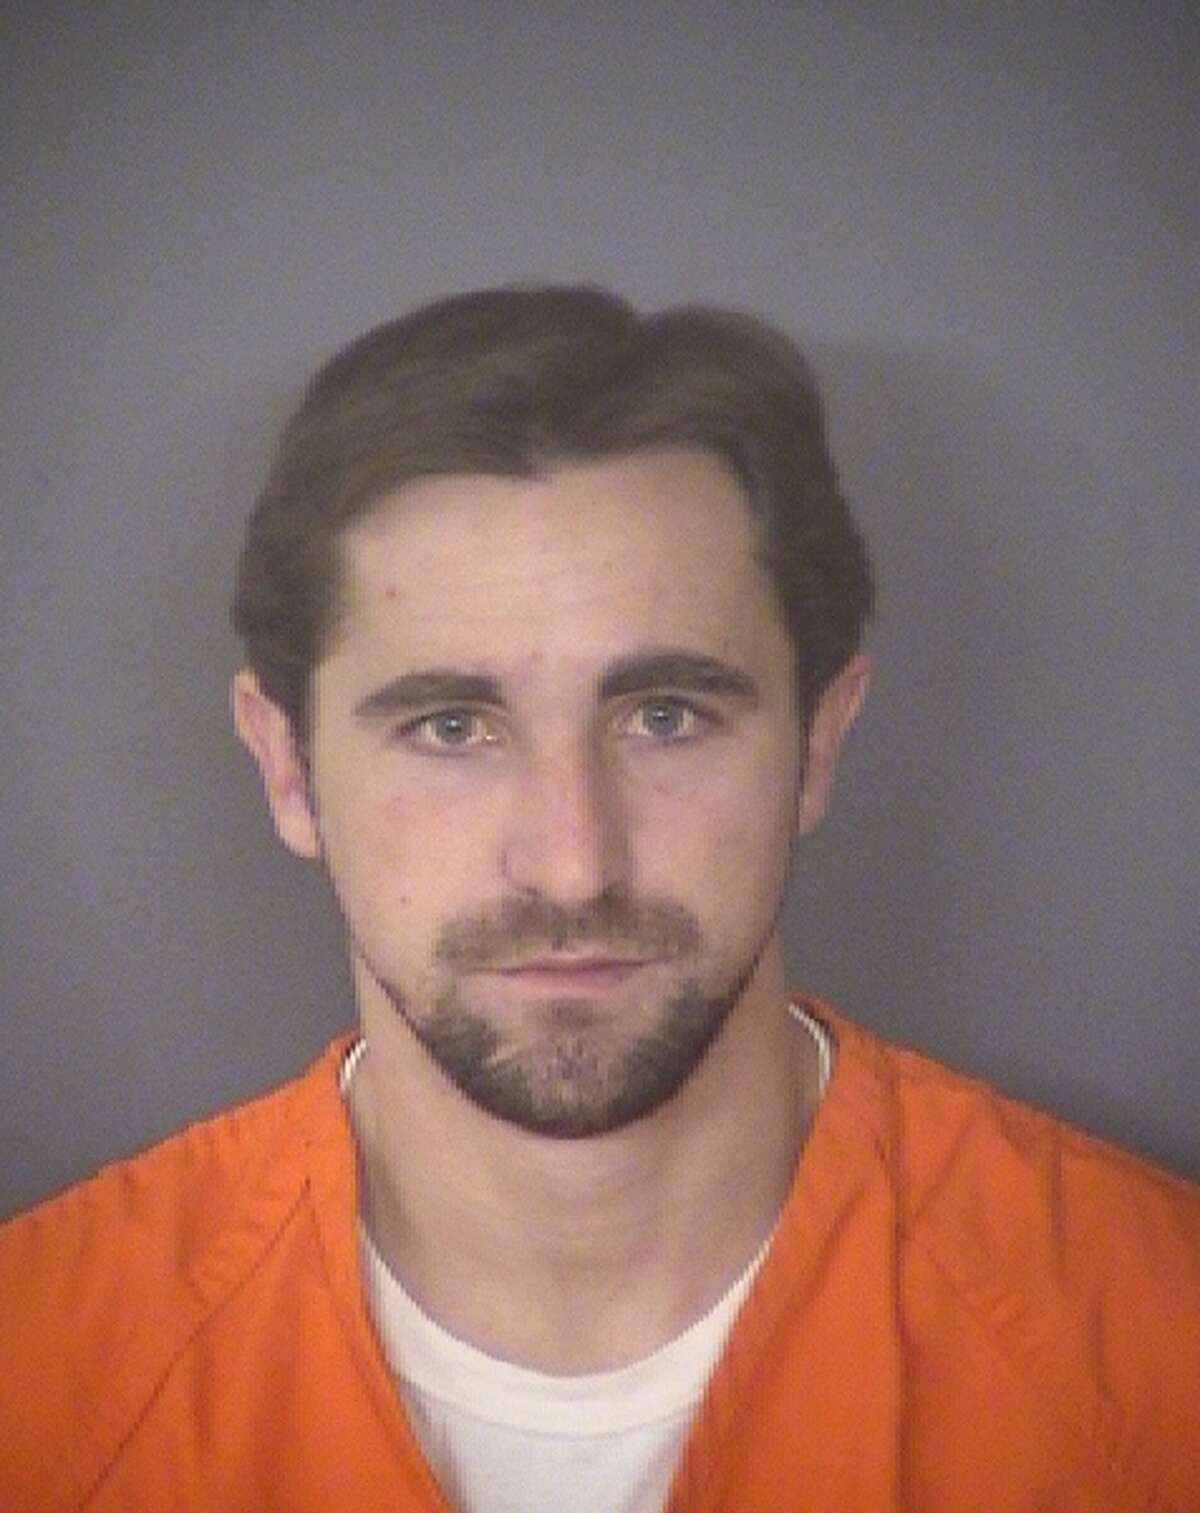 Walter Shafer, 30, was arrested Wednesday and charged with intoxicated manslaughter and failure to stop and render aid after a fatal crash just east of downtown.